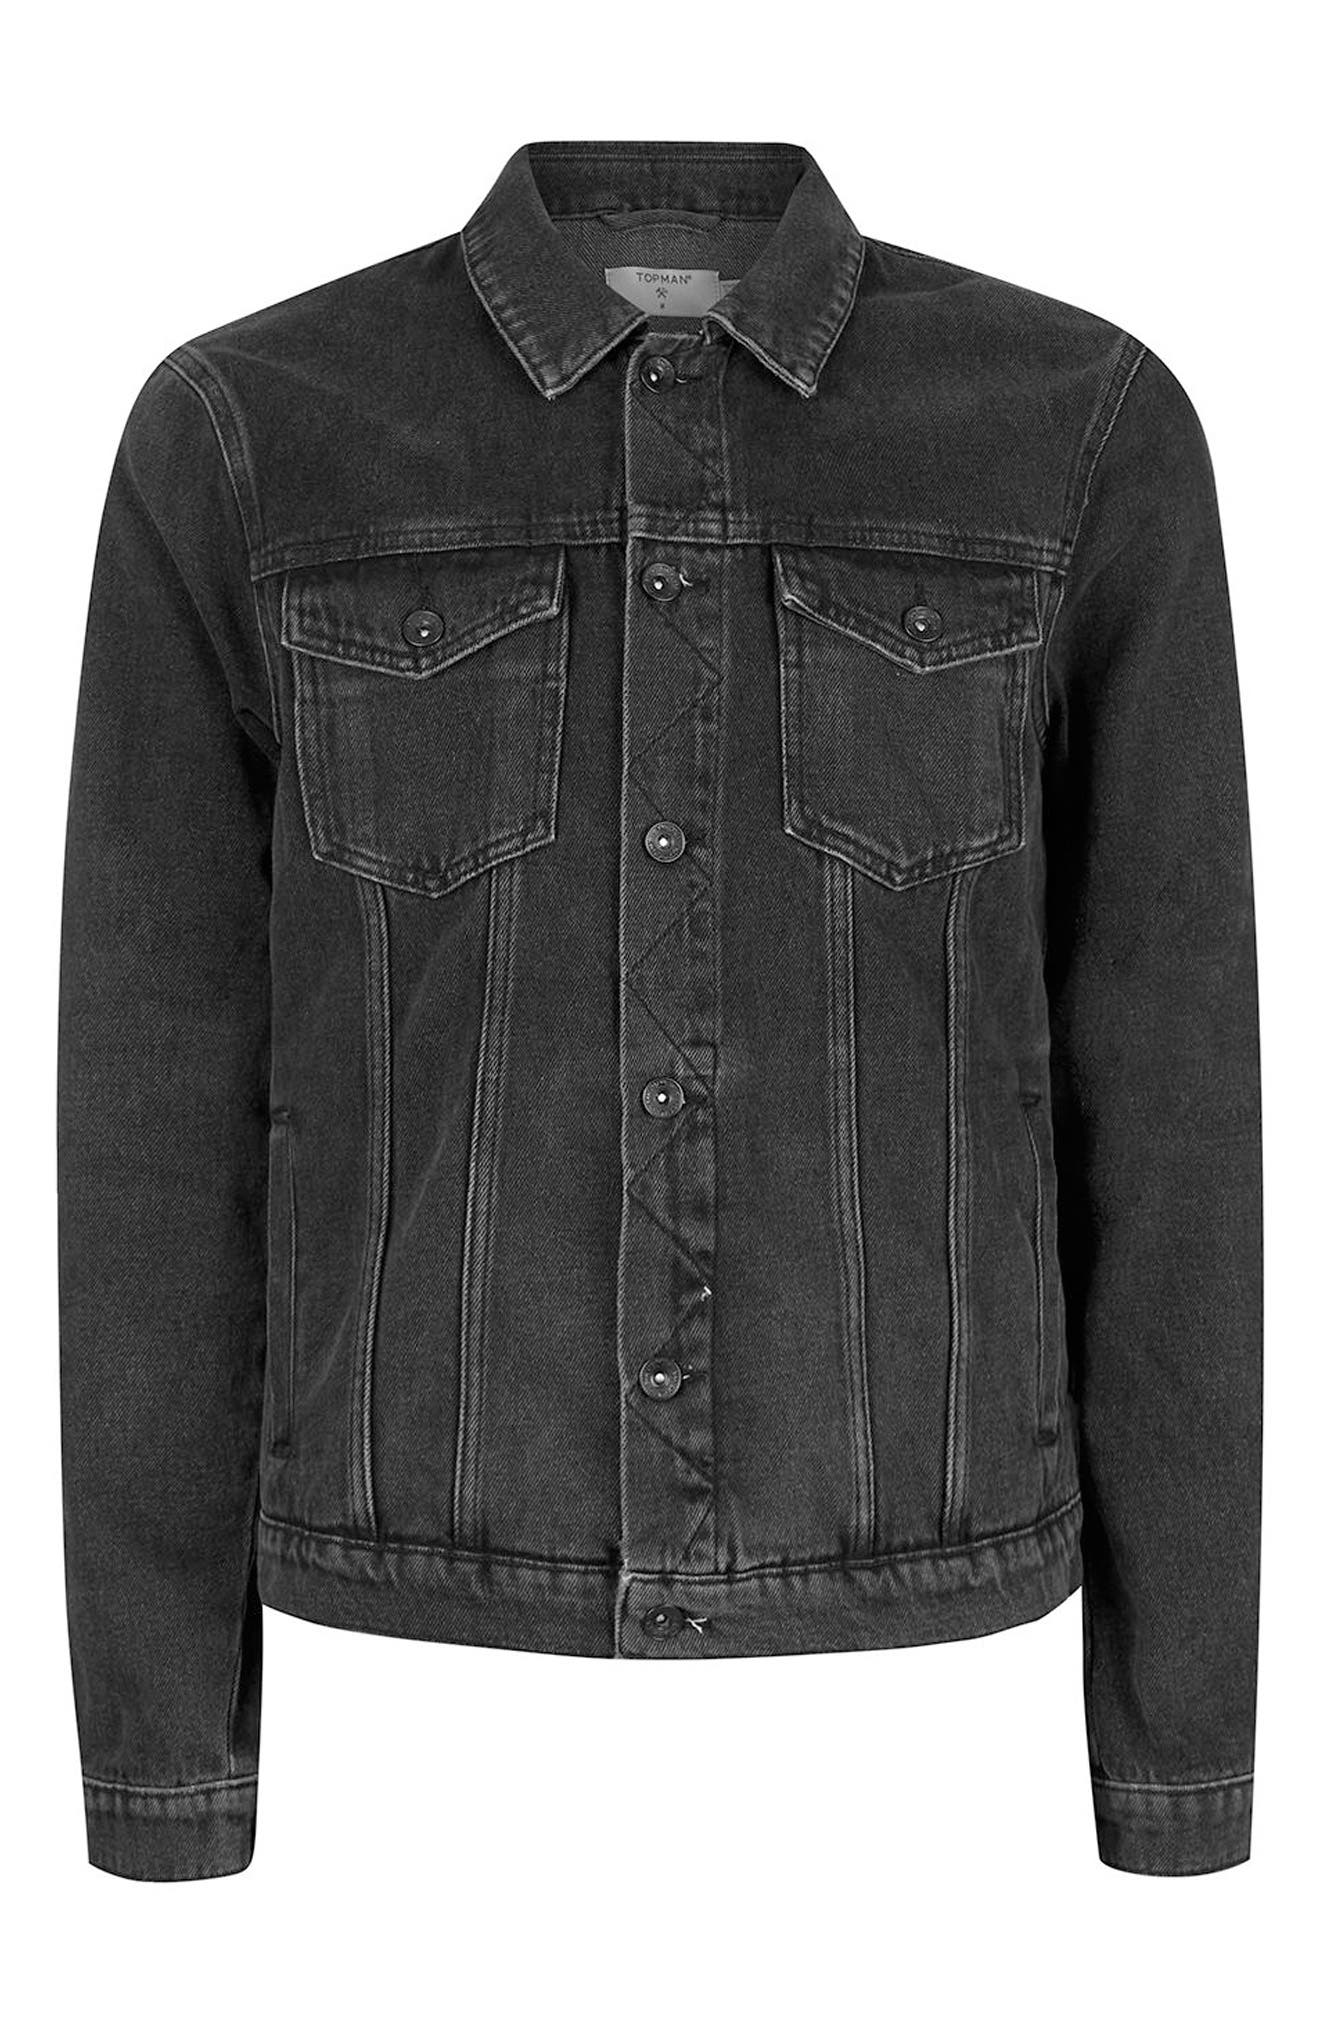 Western Denim Jacket,                             Alternate thumbnail 5, color,                             Black